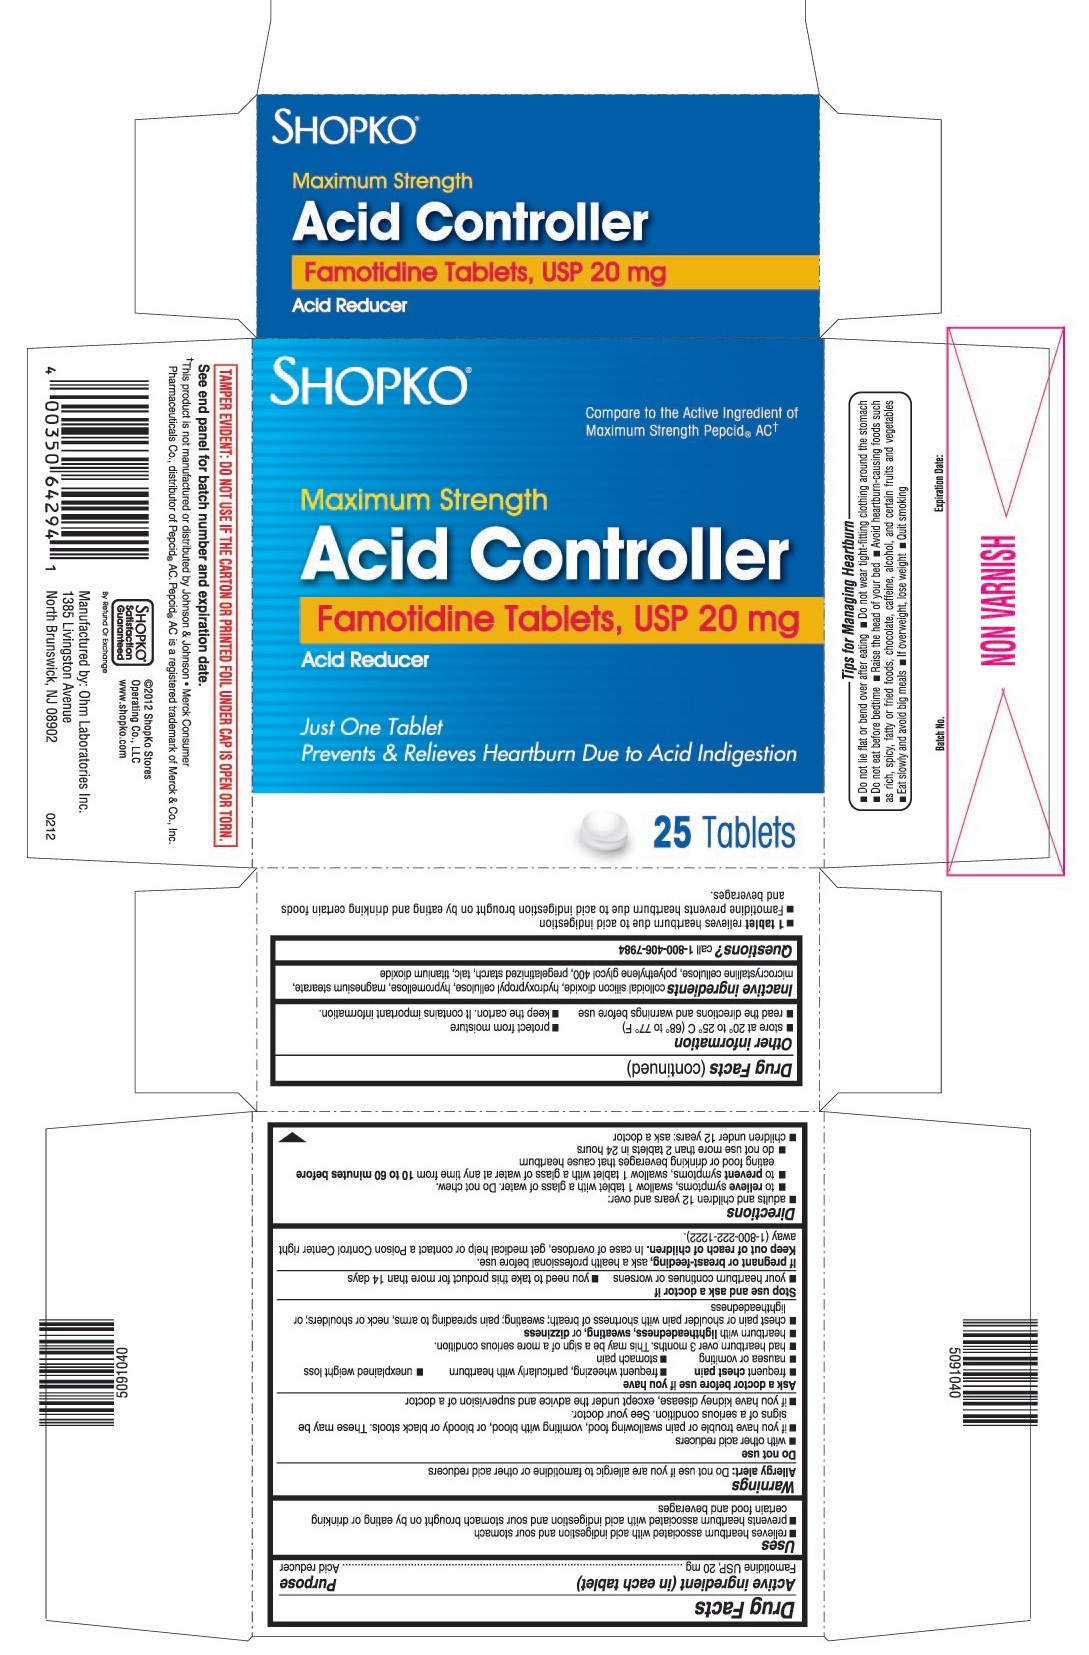 This is the 25 count bottle carton label for Shopko Famotidine tablets, USP 20 mg.